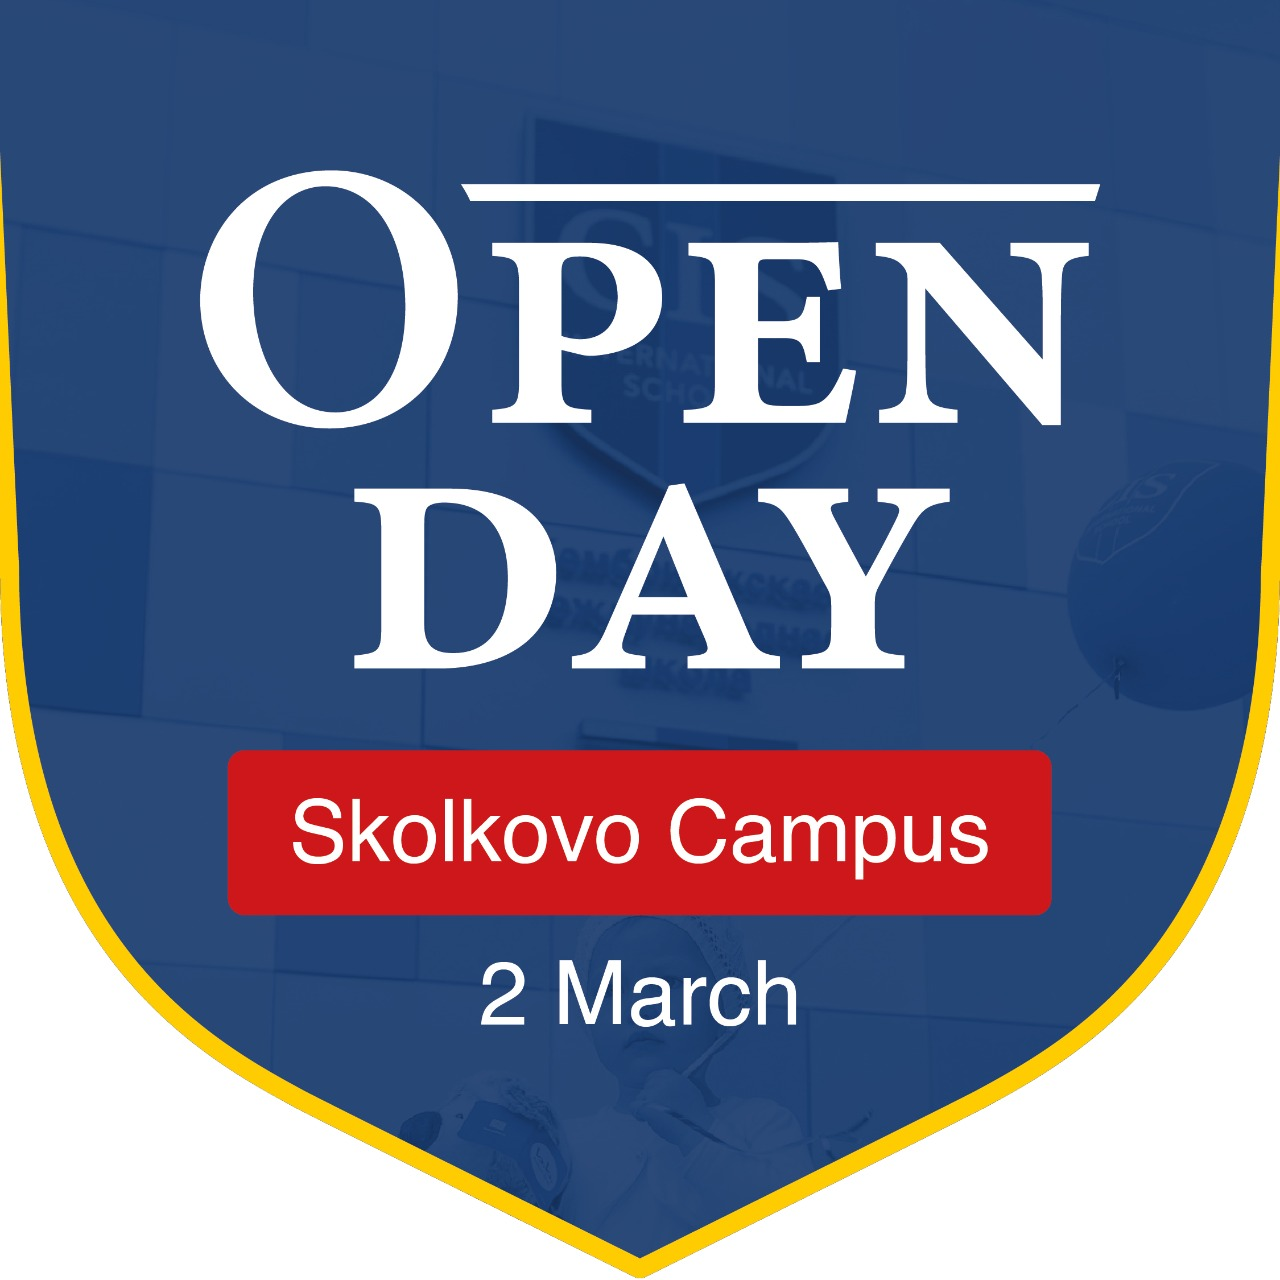 Open Day at CIS Skolkovo